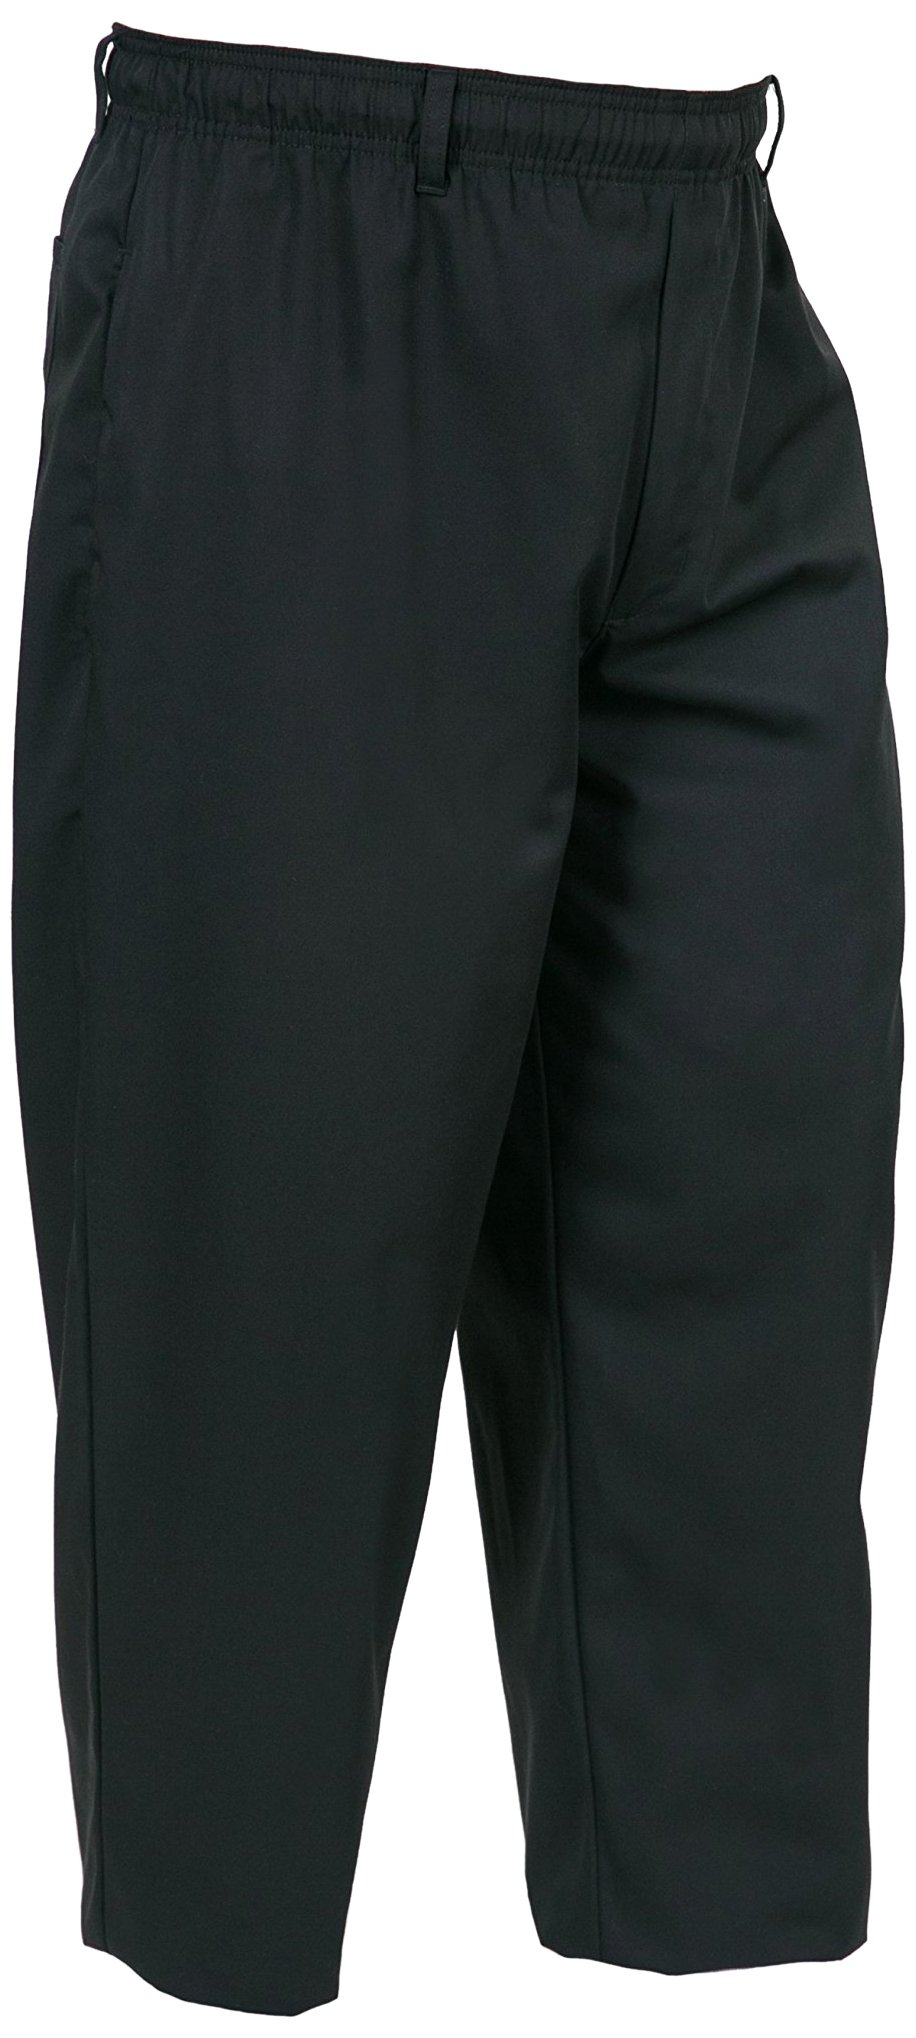 Mercer Culinary M60050BKL Millennia Men's Cook Pants, Large, Black